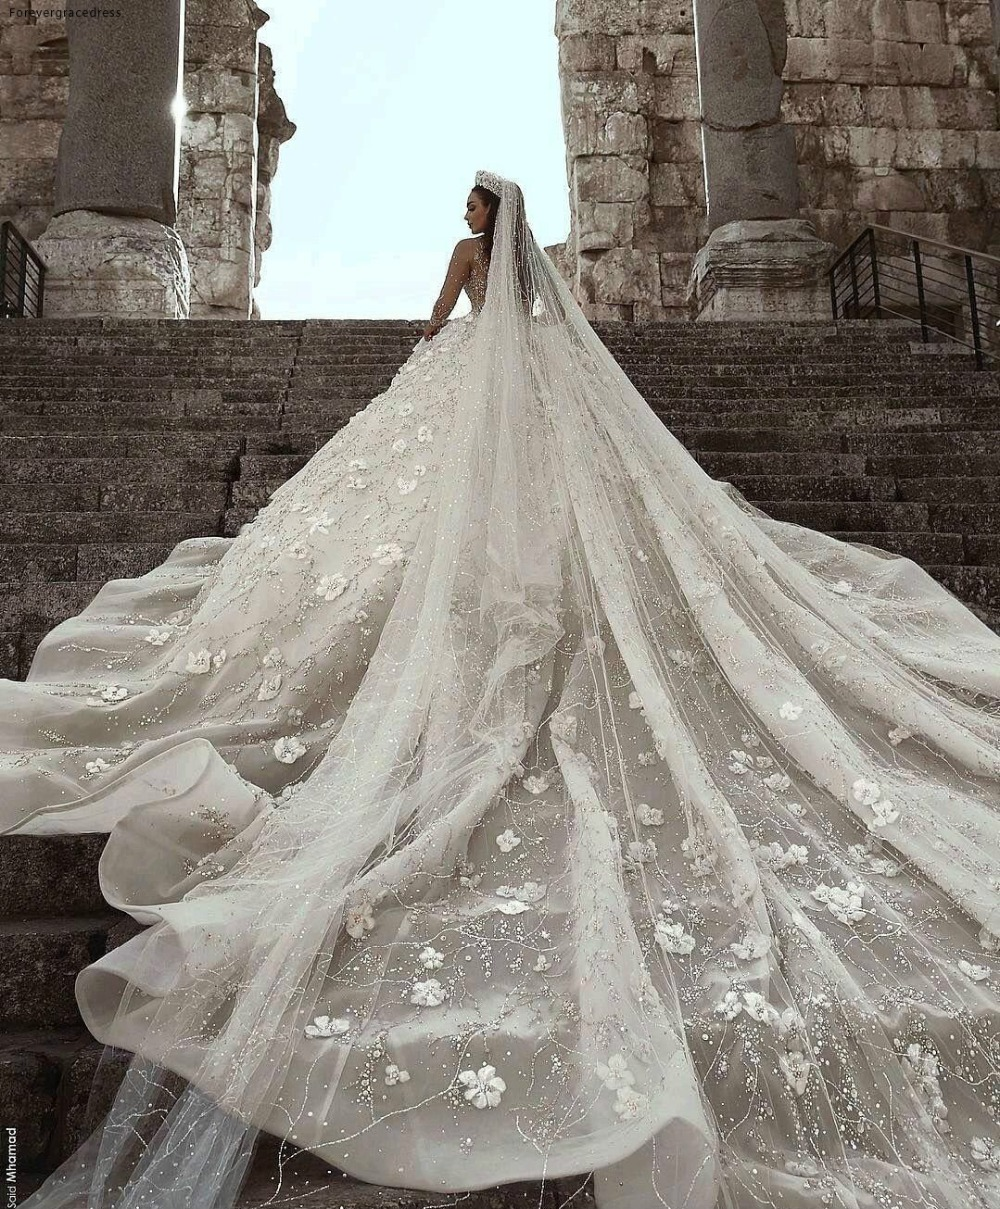 Glamorous Luxury Dubai Arabic New Fashion Lace Ball Gowns Wedding Dresses Long Sleeves 3D Flowers Beading Wedding Dress Bridal Gowns BC0151 591 (8)